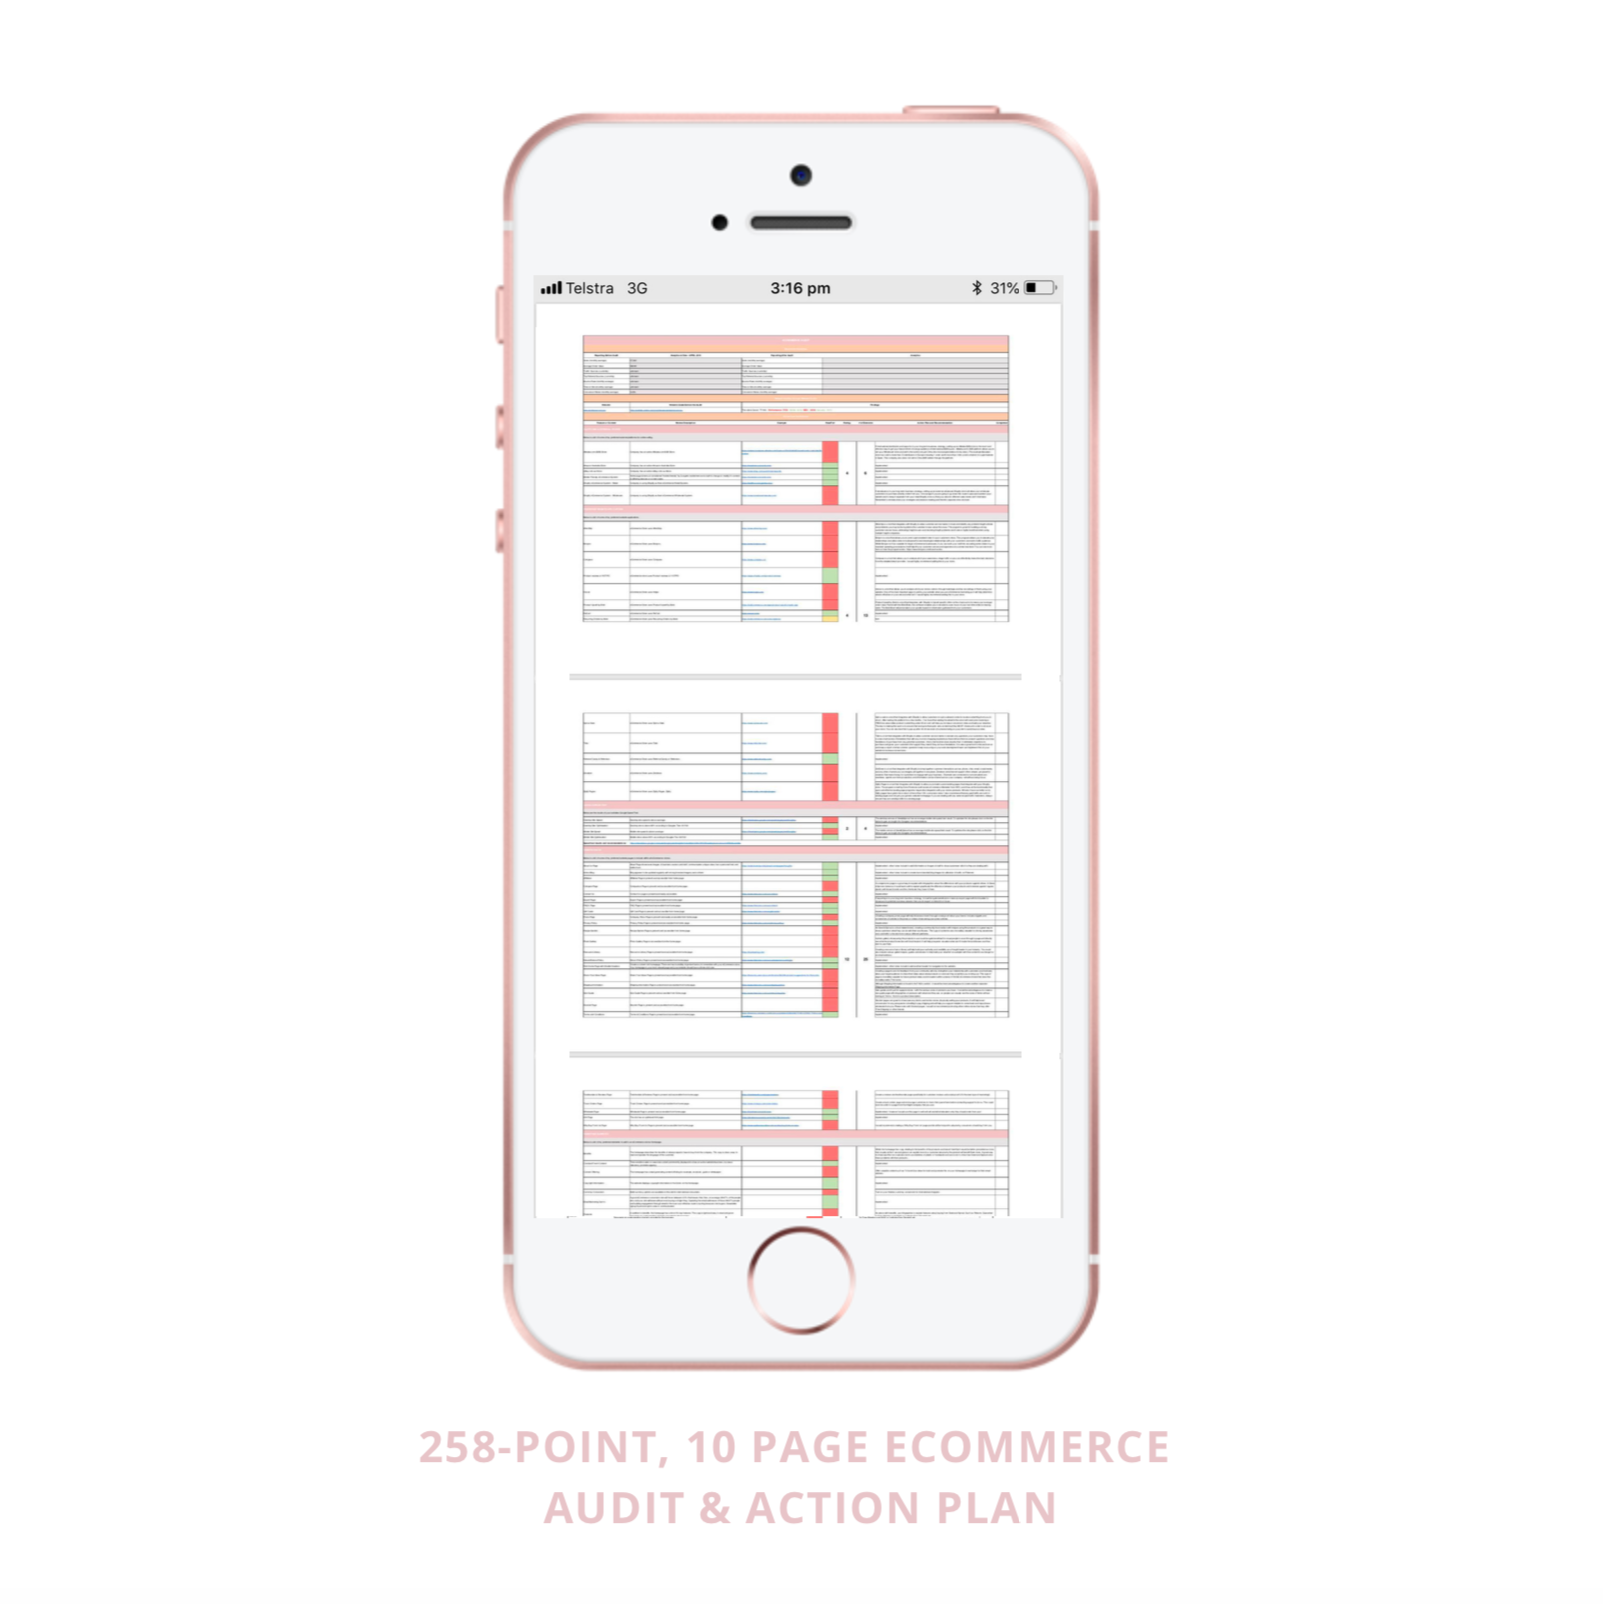 258 point eCommerce Audit by Brynley King